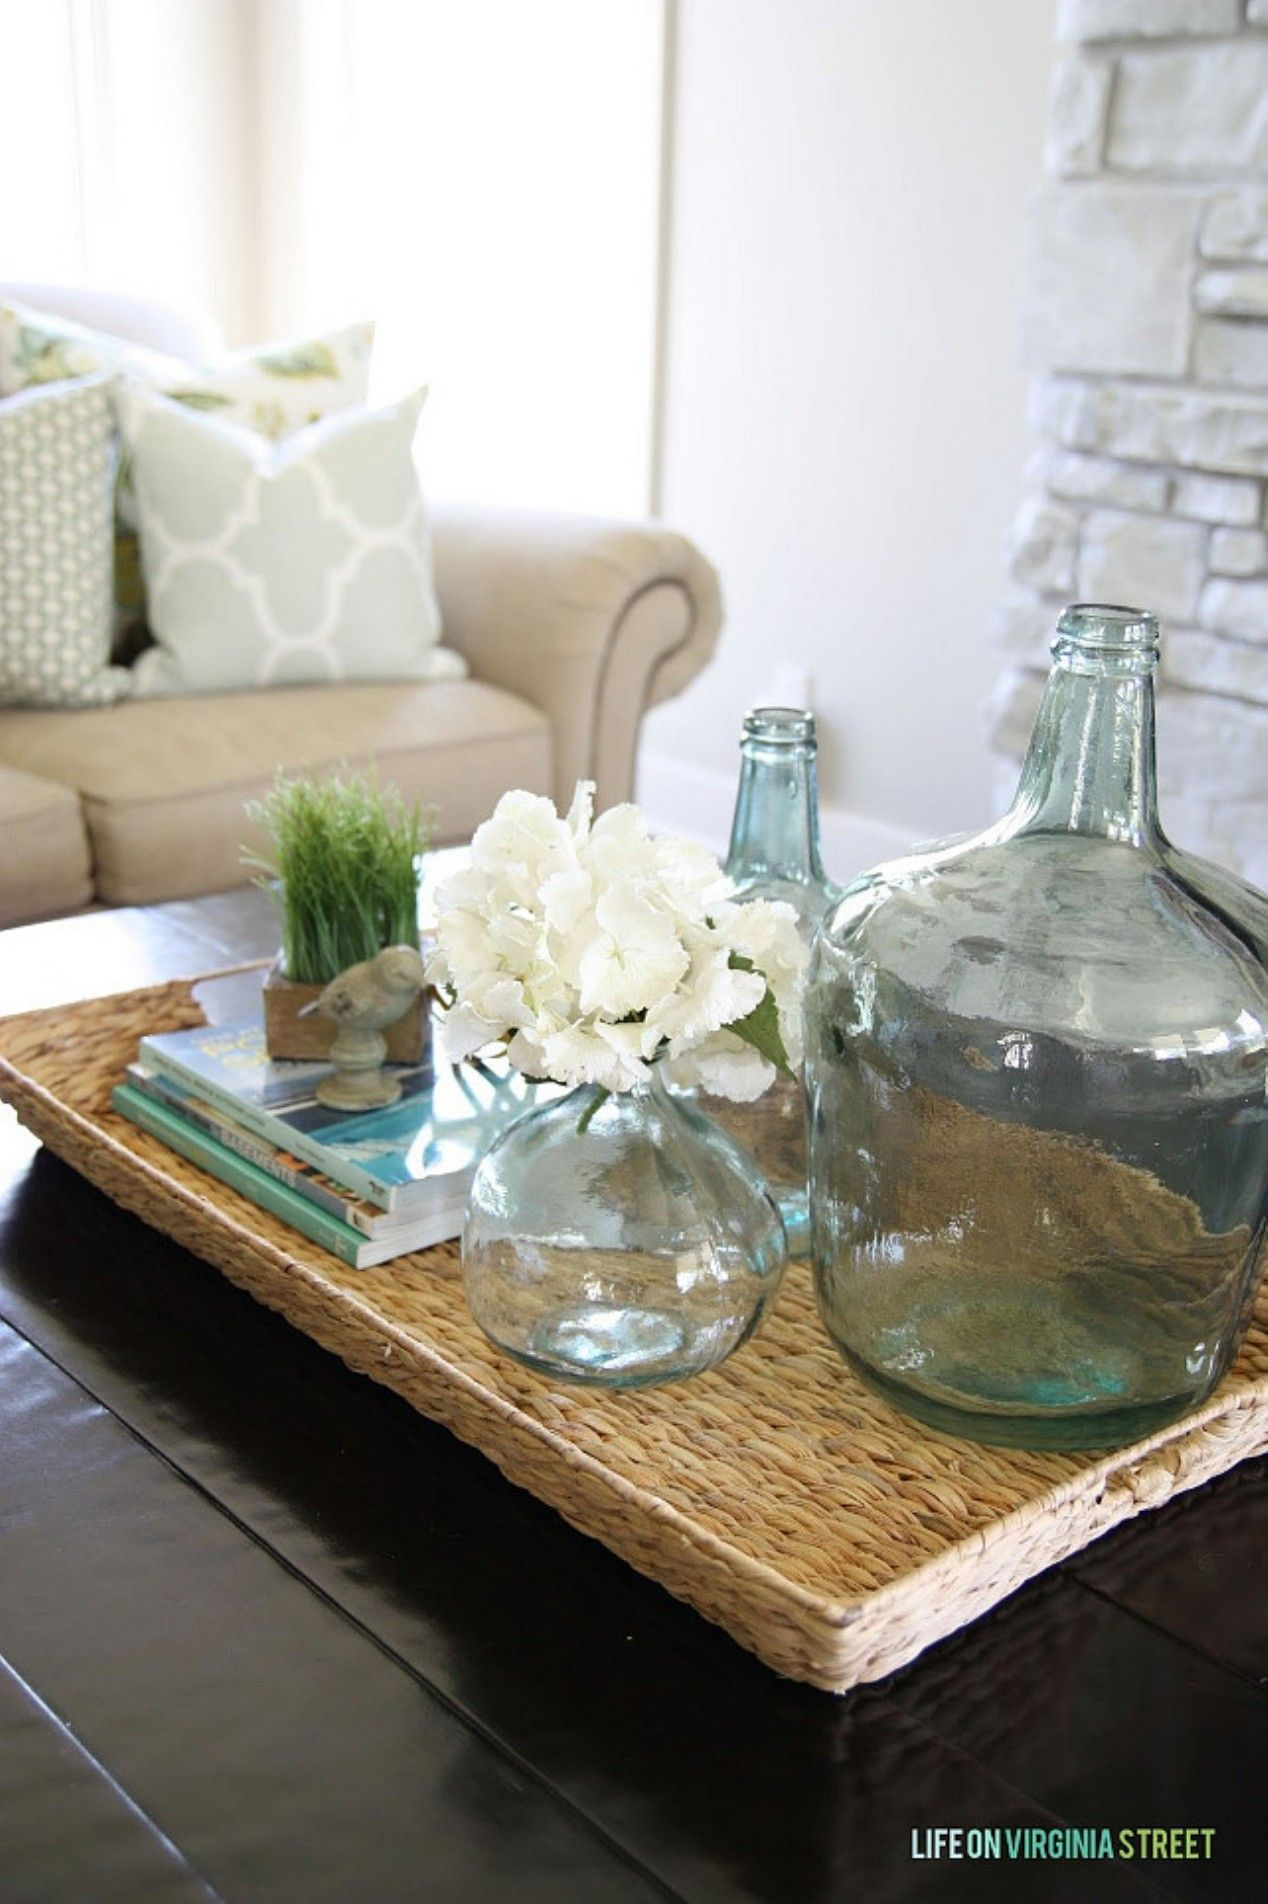 Home Decor Ideas To Make The Most Of Your Space Living Room Coffee Table Decorating Coffee Tables Coffee Table Arrangements